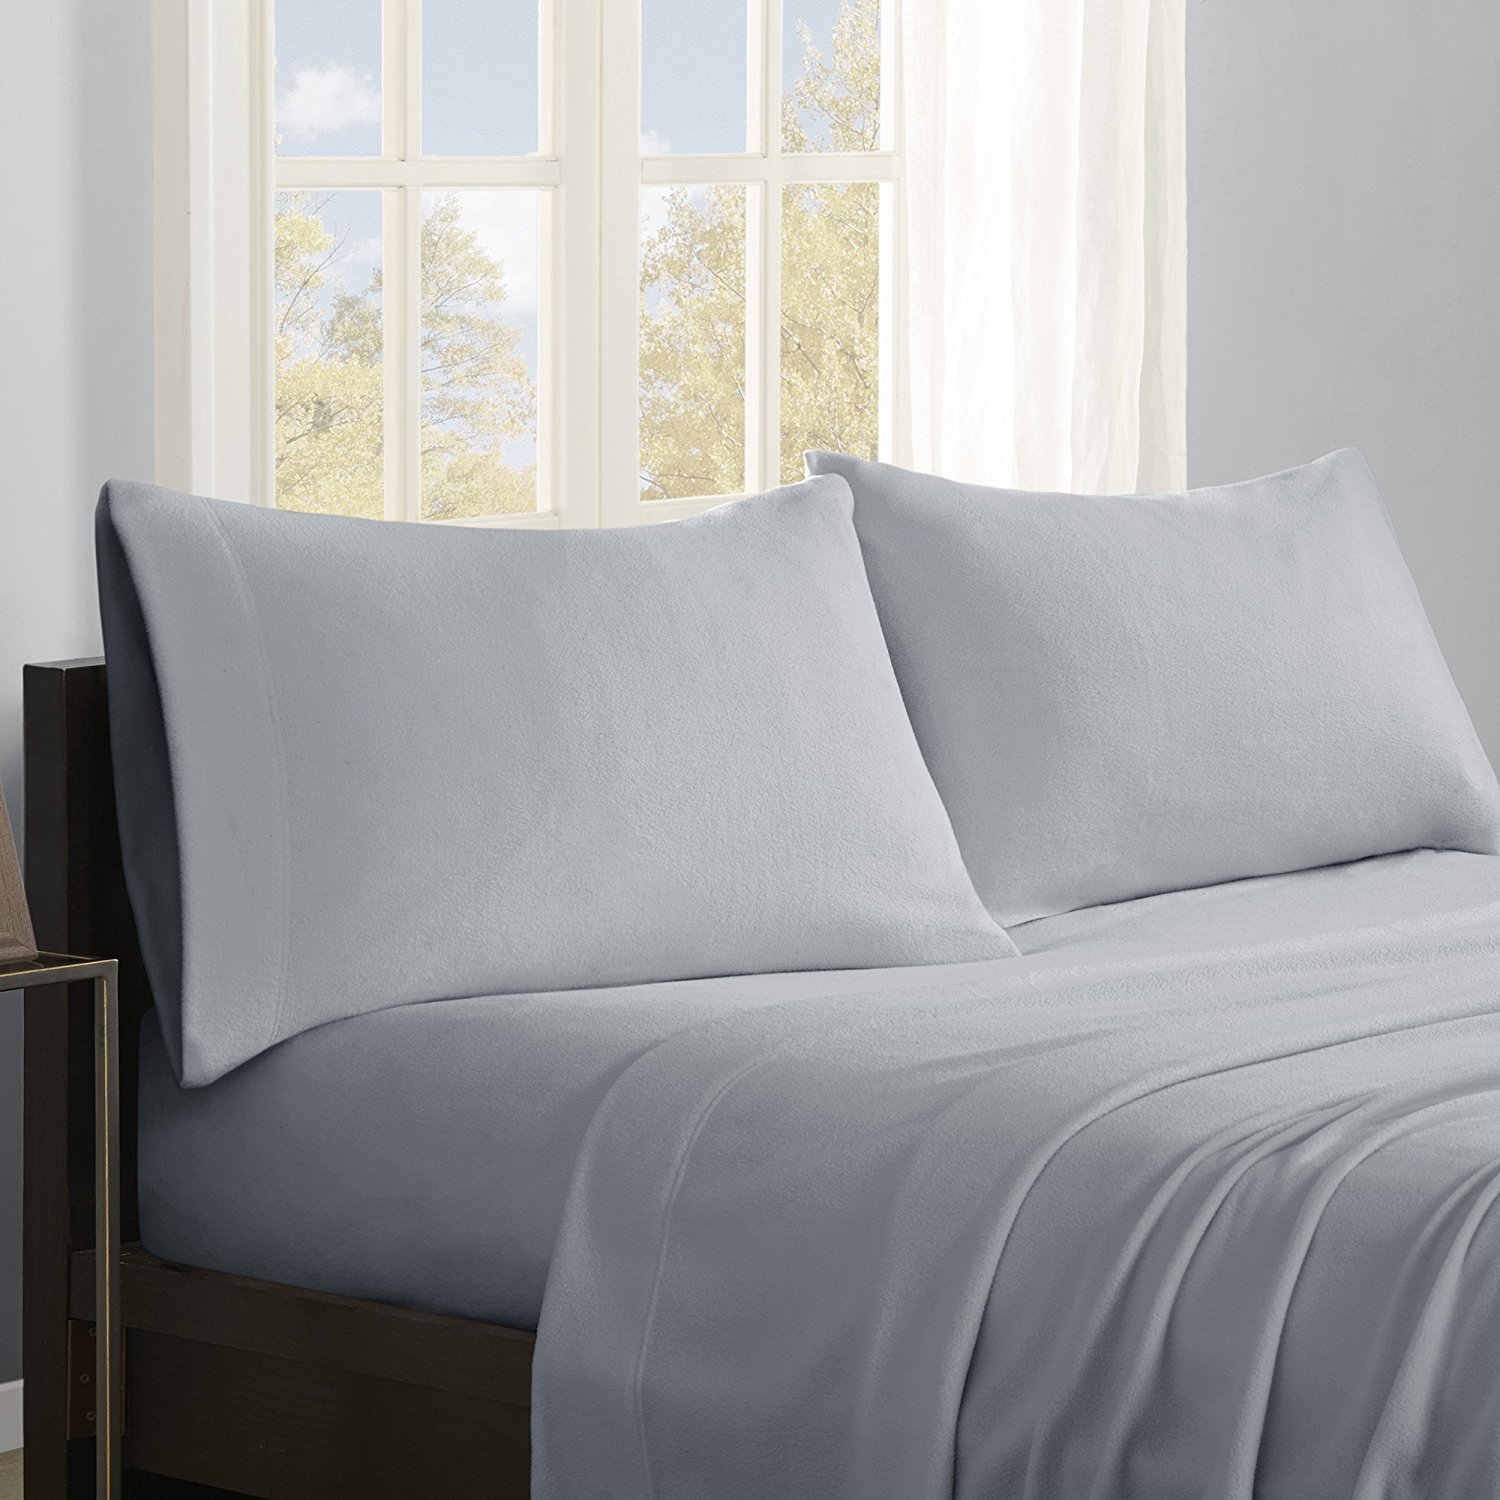 Micro Fleece Sheet Set, King, Grey, Set includes: 1 flat sheet, 1 fitted sheet, 2 pillowcases By True North by Sleep Philosophy